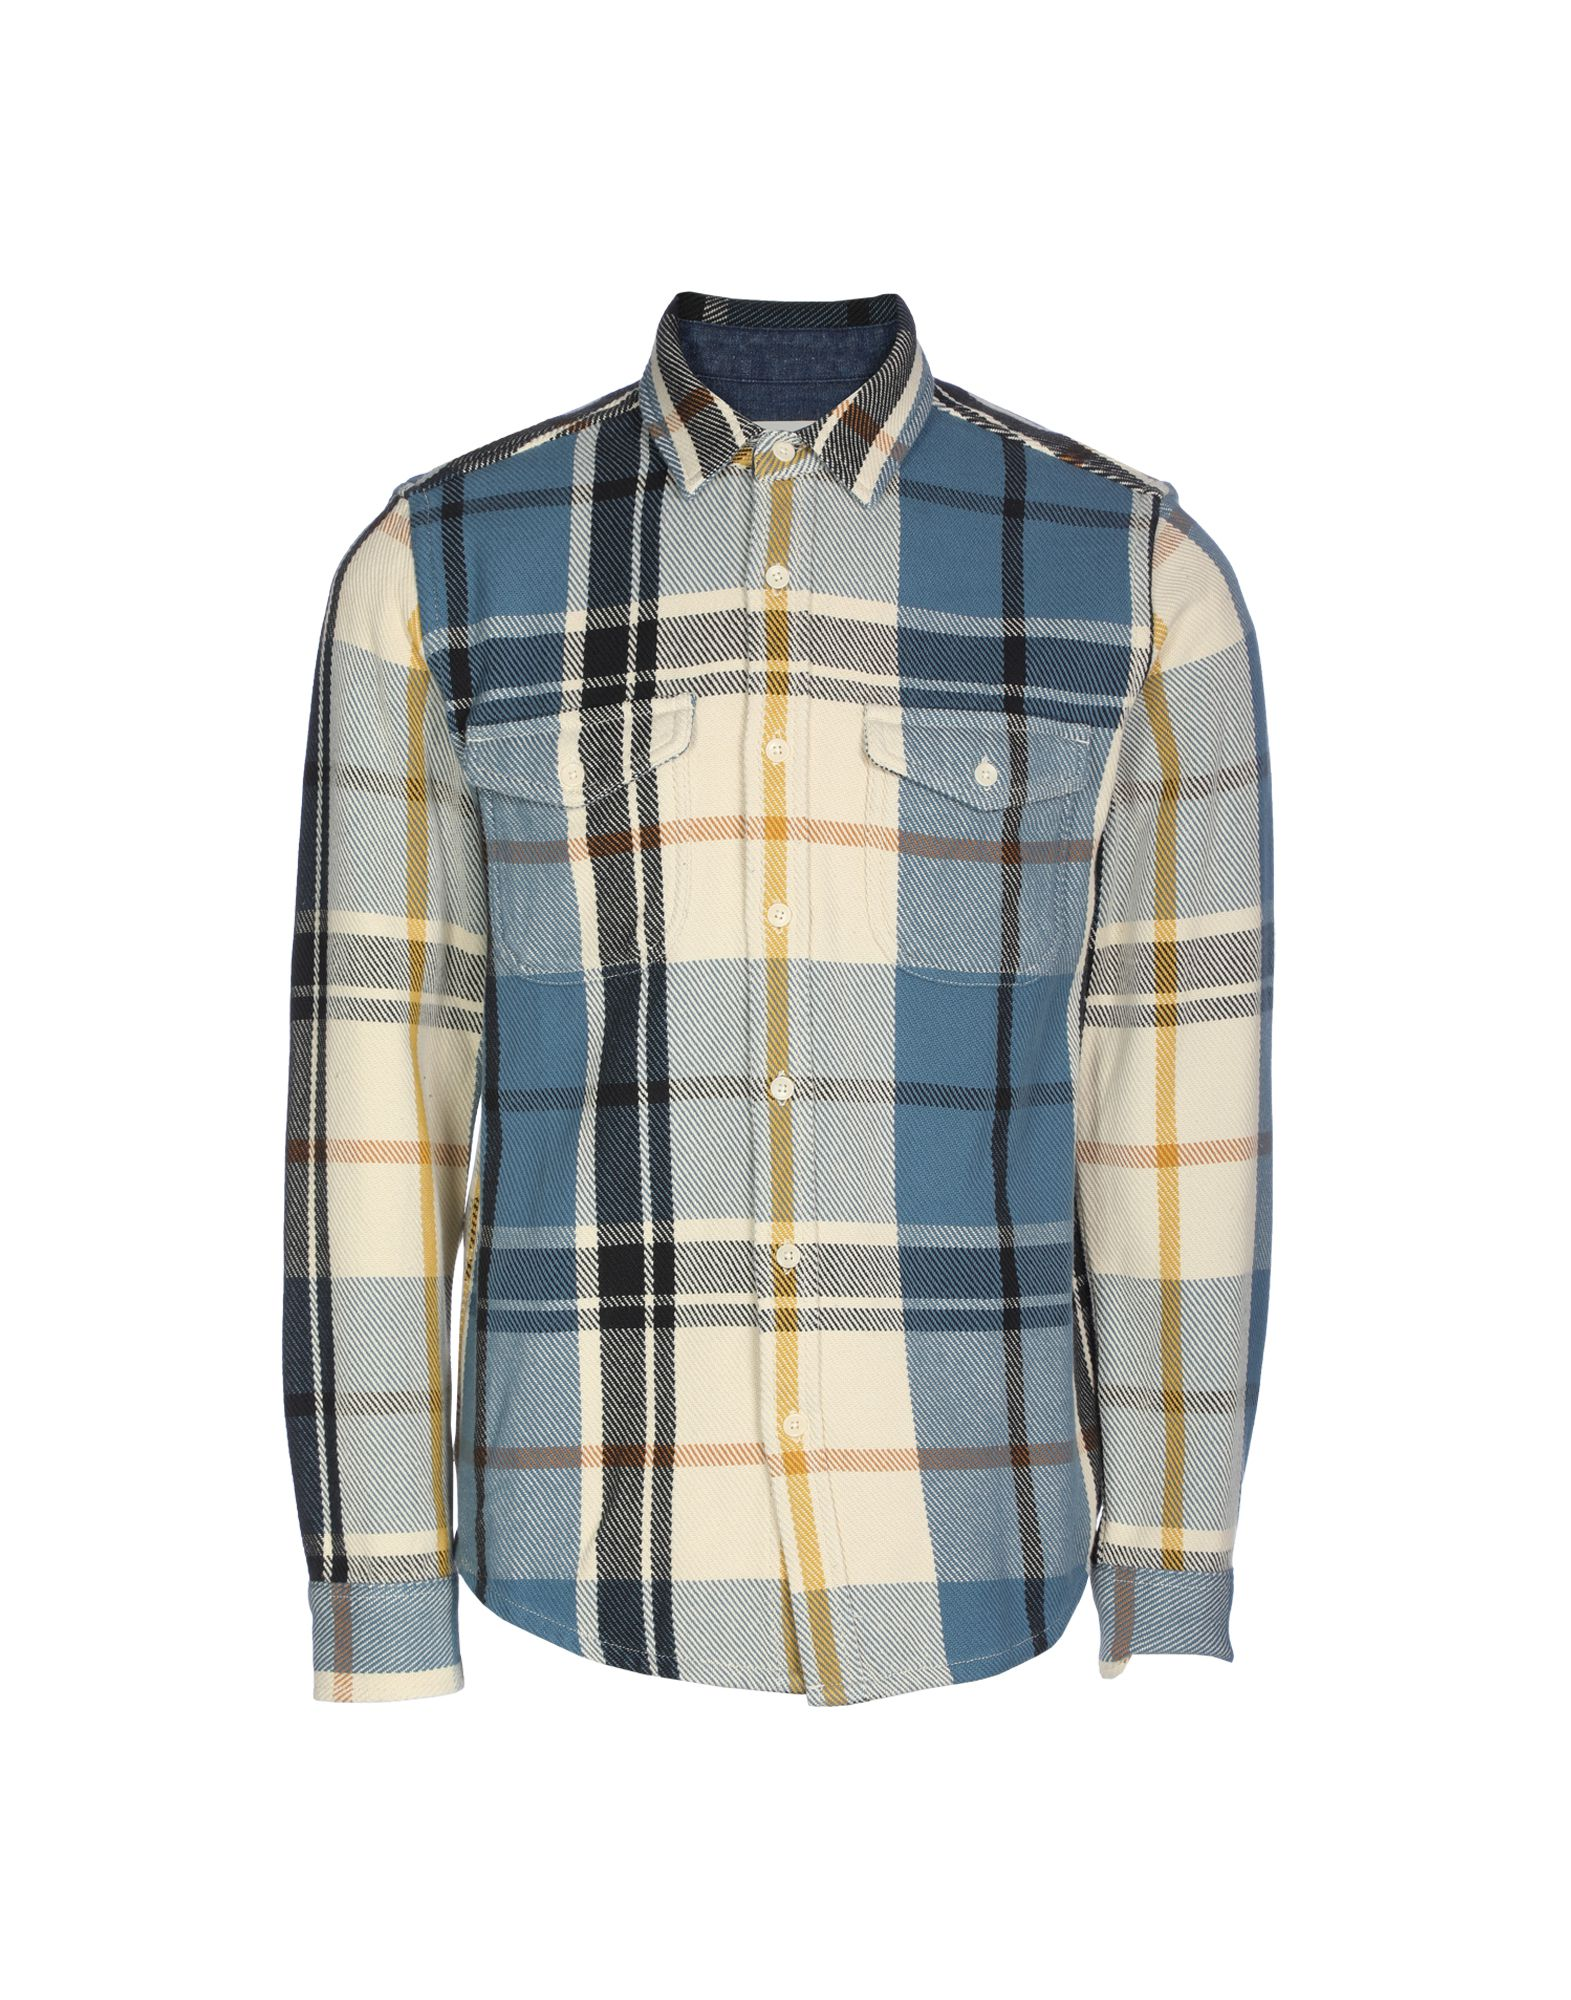 OUTERKNOWN Checked Shirt in Pastel Blue